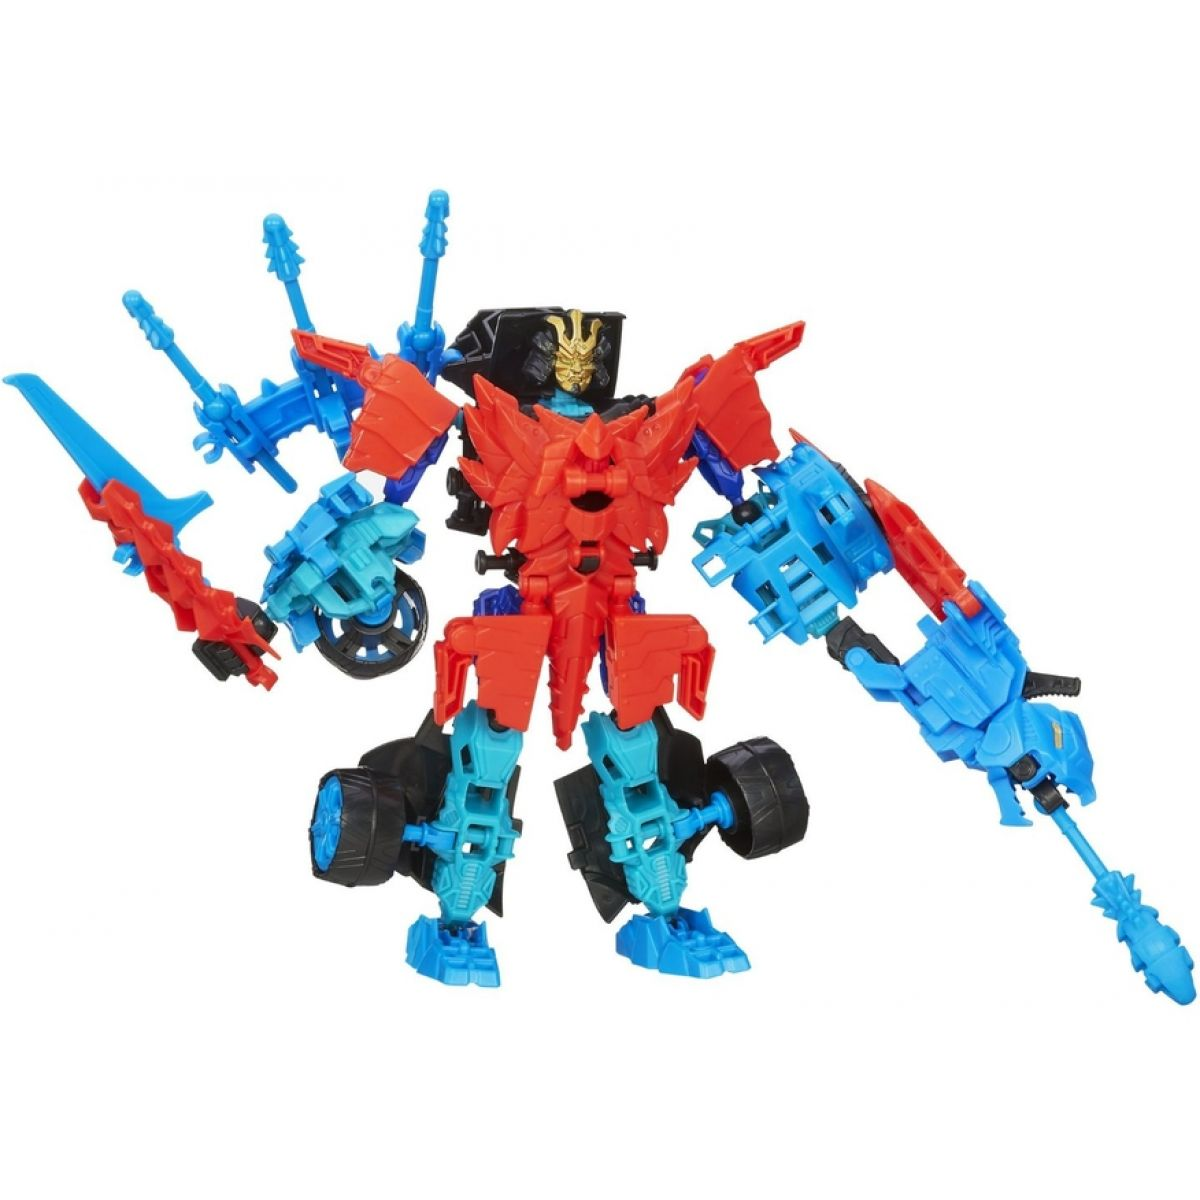 Hasbro TRANSFORMERS 4 Construct Bots Autobot Drift & Roughneck